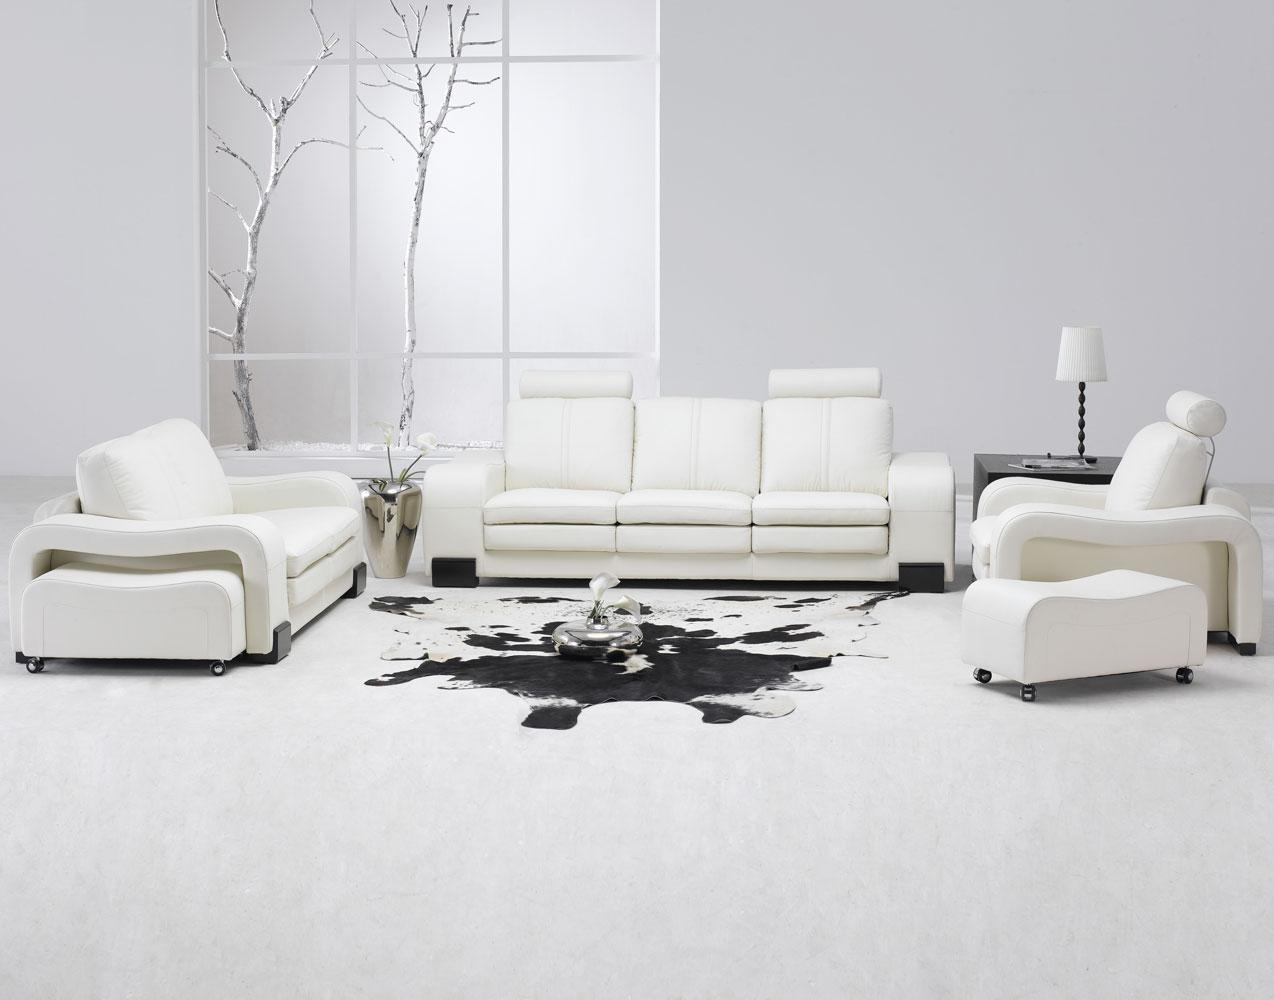 26 modern style living rooms ideas in pictures home Modern white furniture for living room